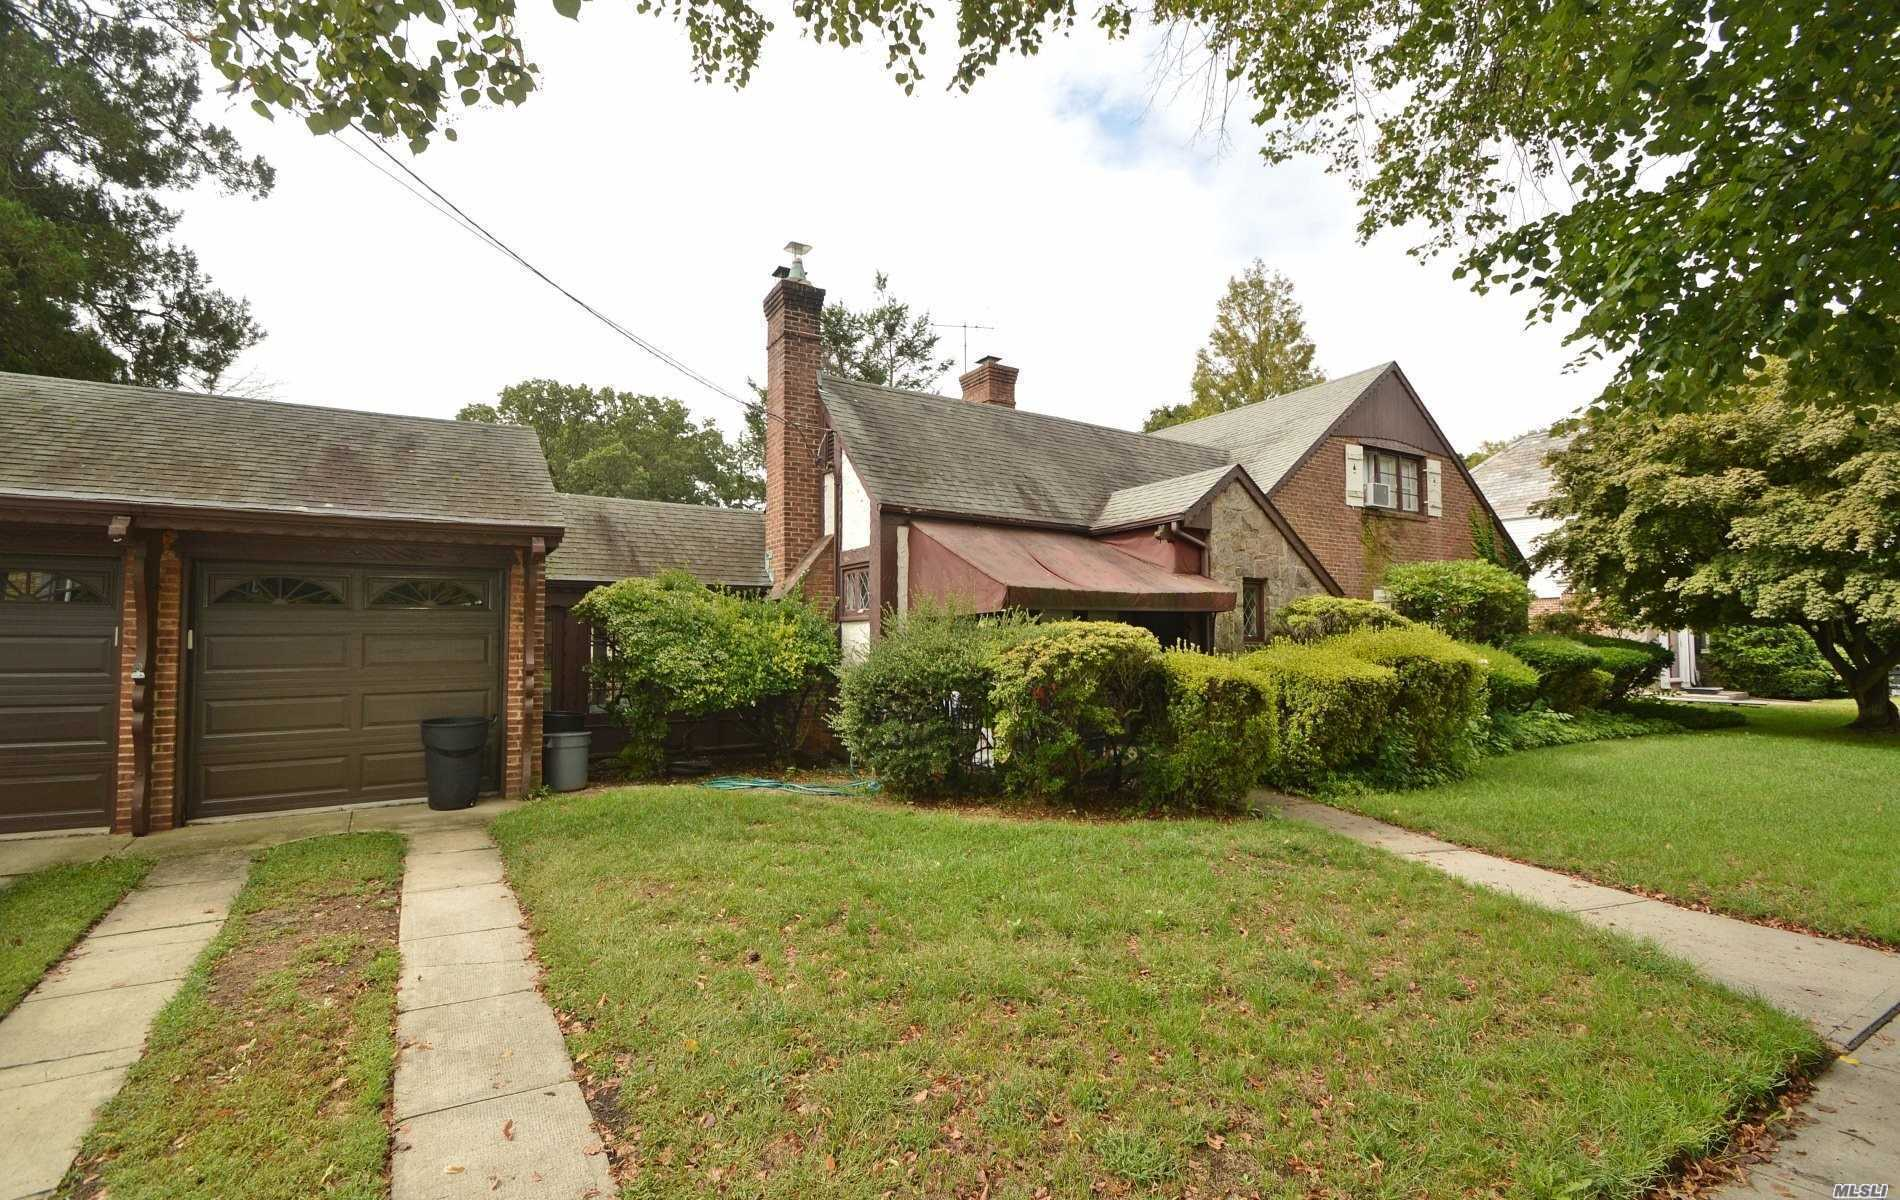 This Lovely & Charming English Tudor Features An Entry Foyer With A Coat Closet, Eik, Living Rm.W/Wood Burning Fireplace, Formal Dining Rm, 3 Bedms, Including A King Size Master Suite, 2 Full Baths, Hardwood Floors, Full Basement W/Wood Burning Fireplace, Enclosed Porch, 2 Car Garage, Plus Much More....